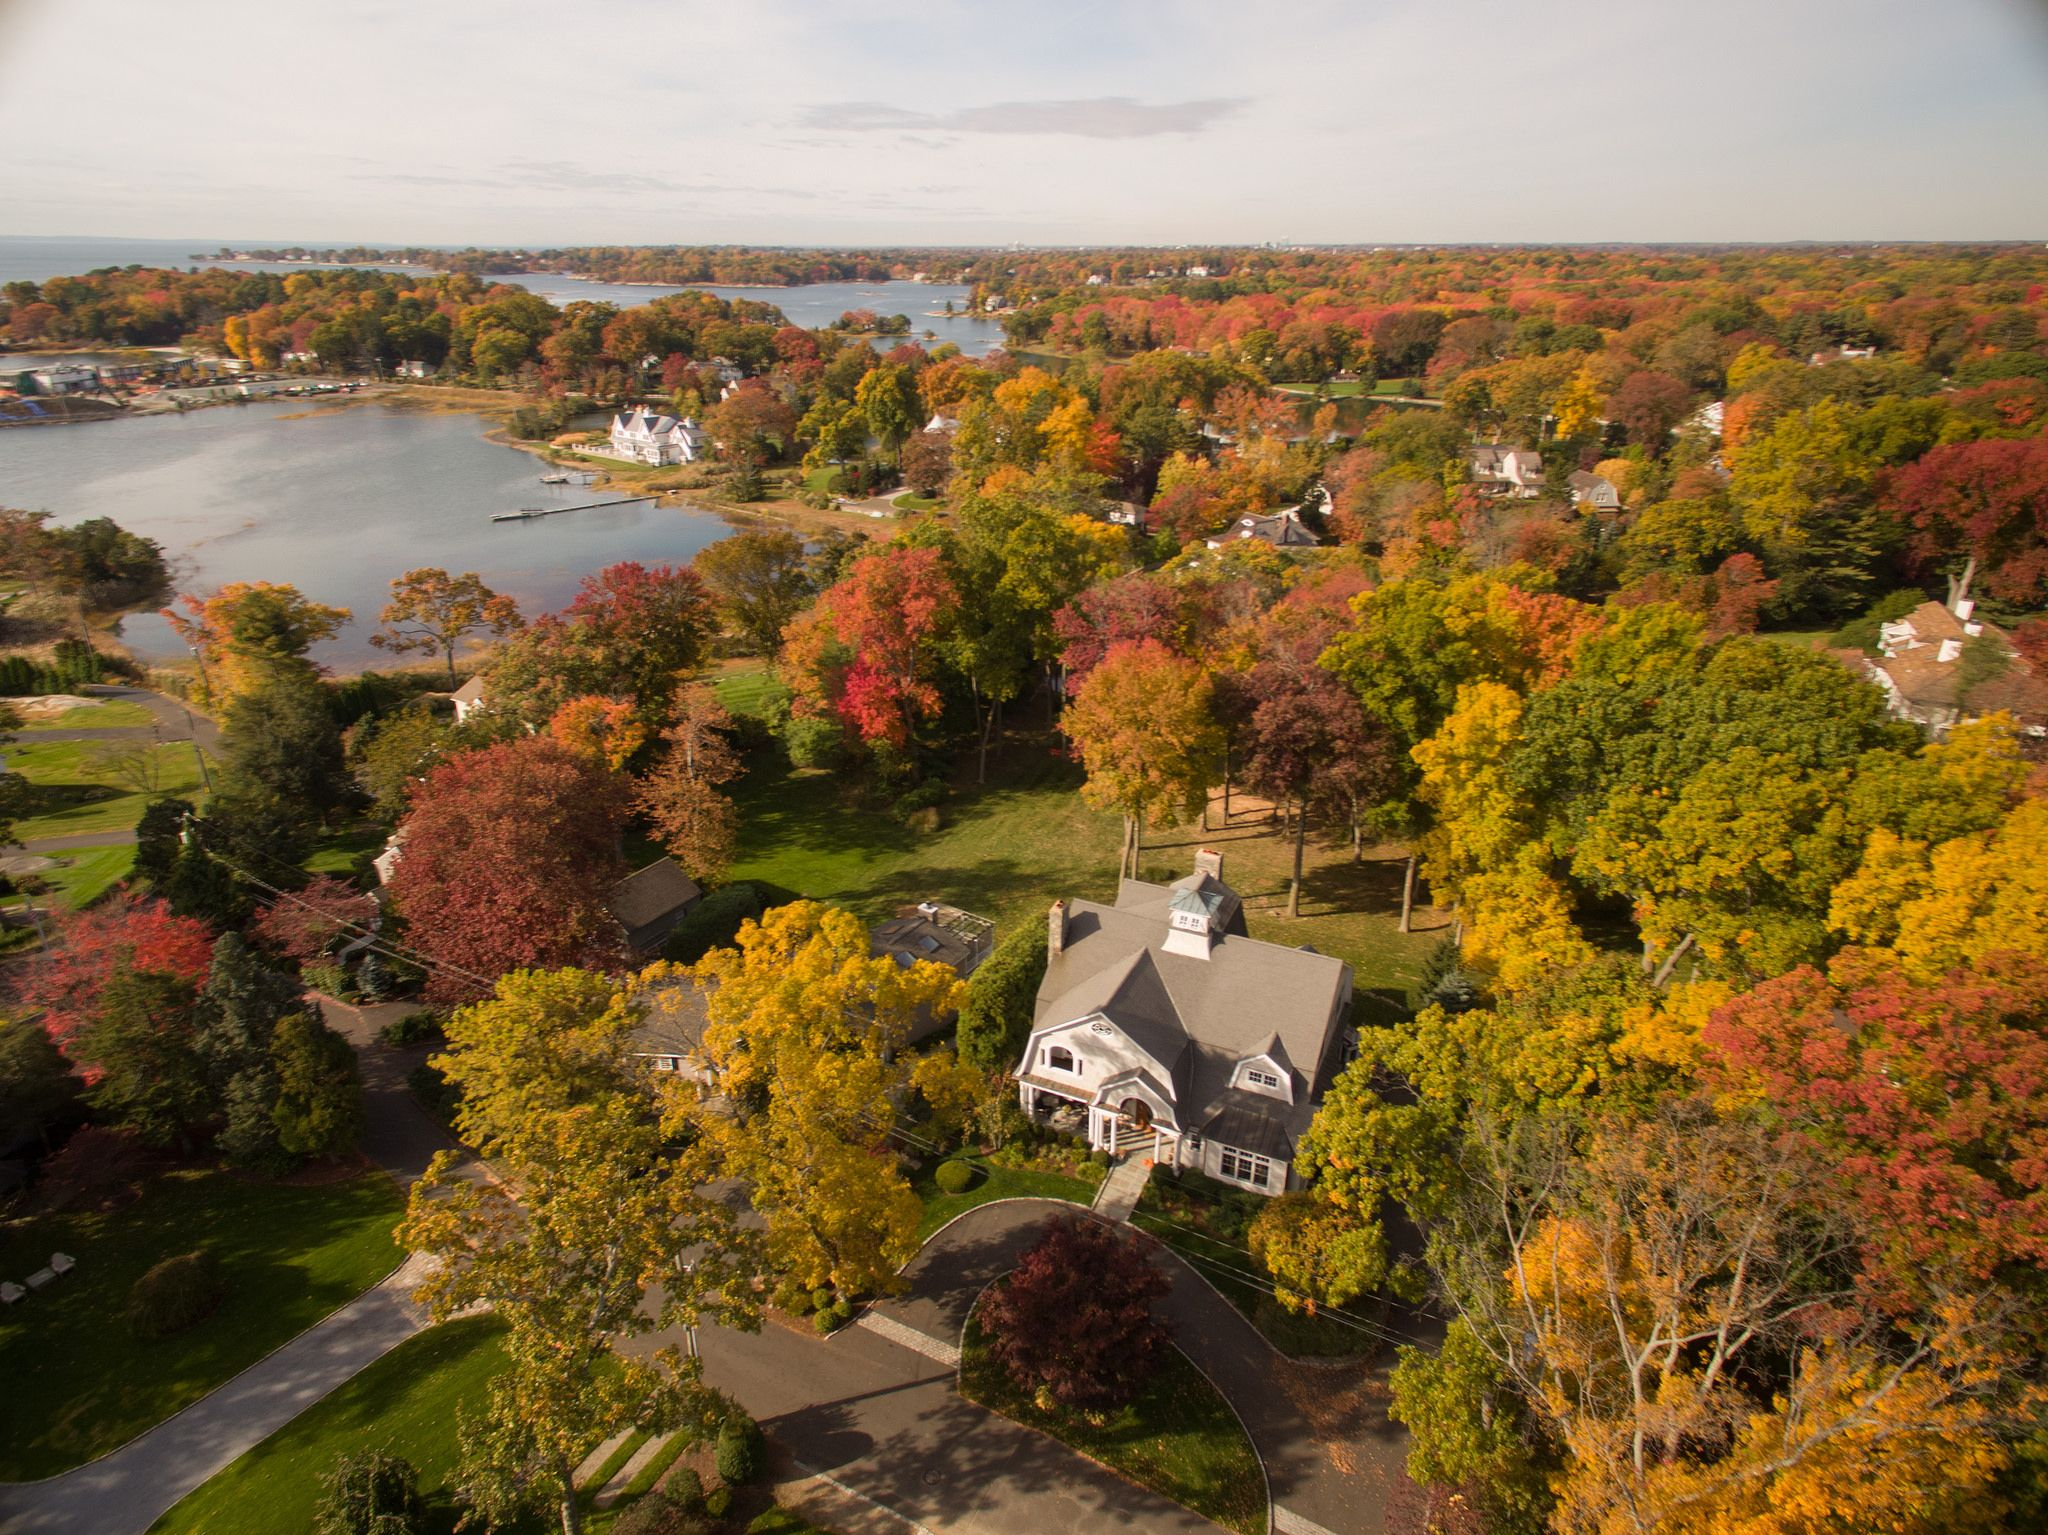 Fabulous Colonial With Water Views ... 134 Five Mile River Road, Darien CT. Represented by Jill Keating Brannigan. To see more eye candy on this home go to https://www.halstead.com/sale/ct/darien/134-five-mile-river-road/house/99143828